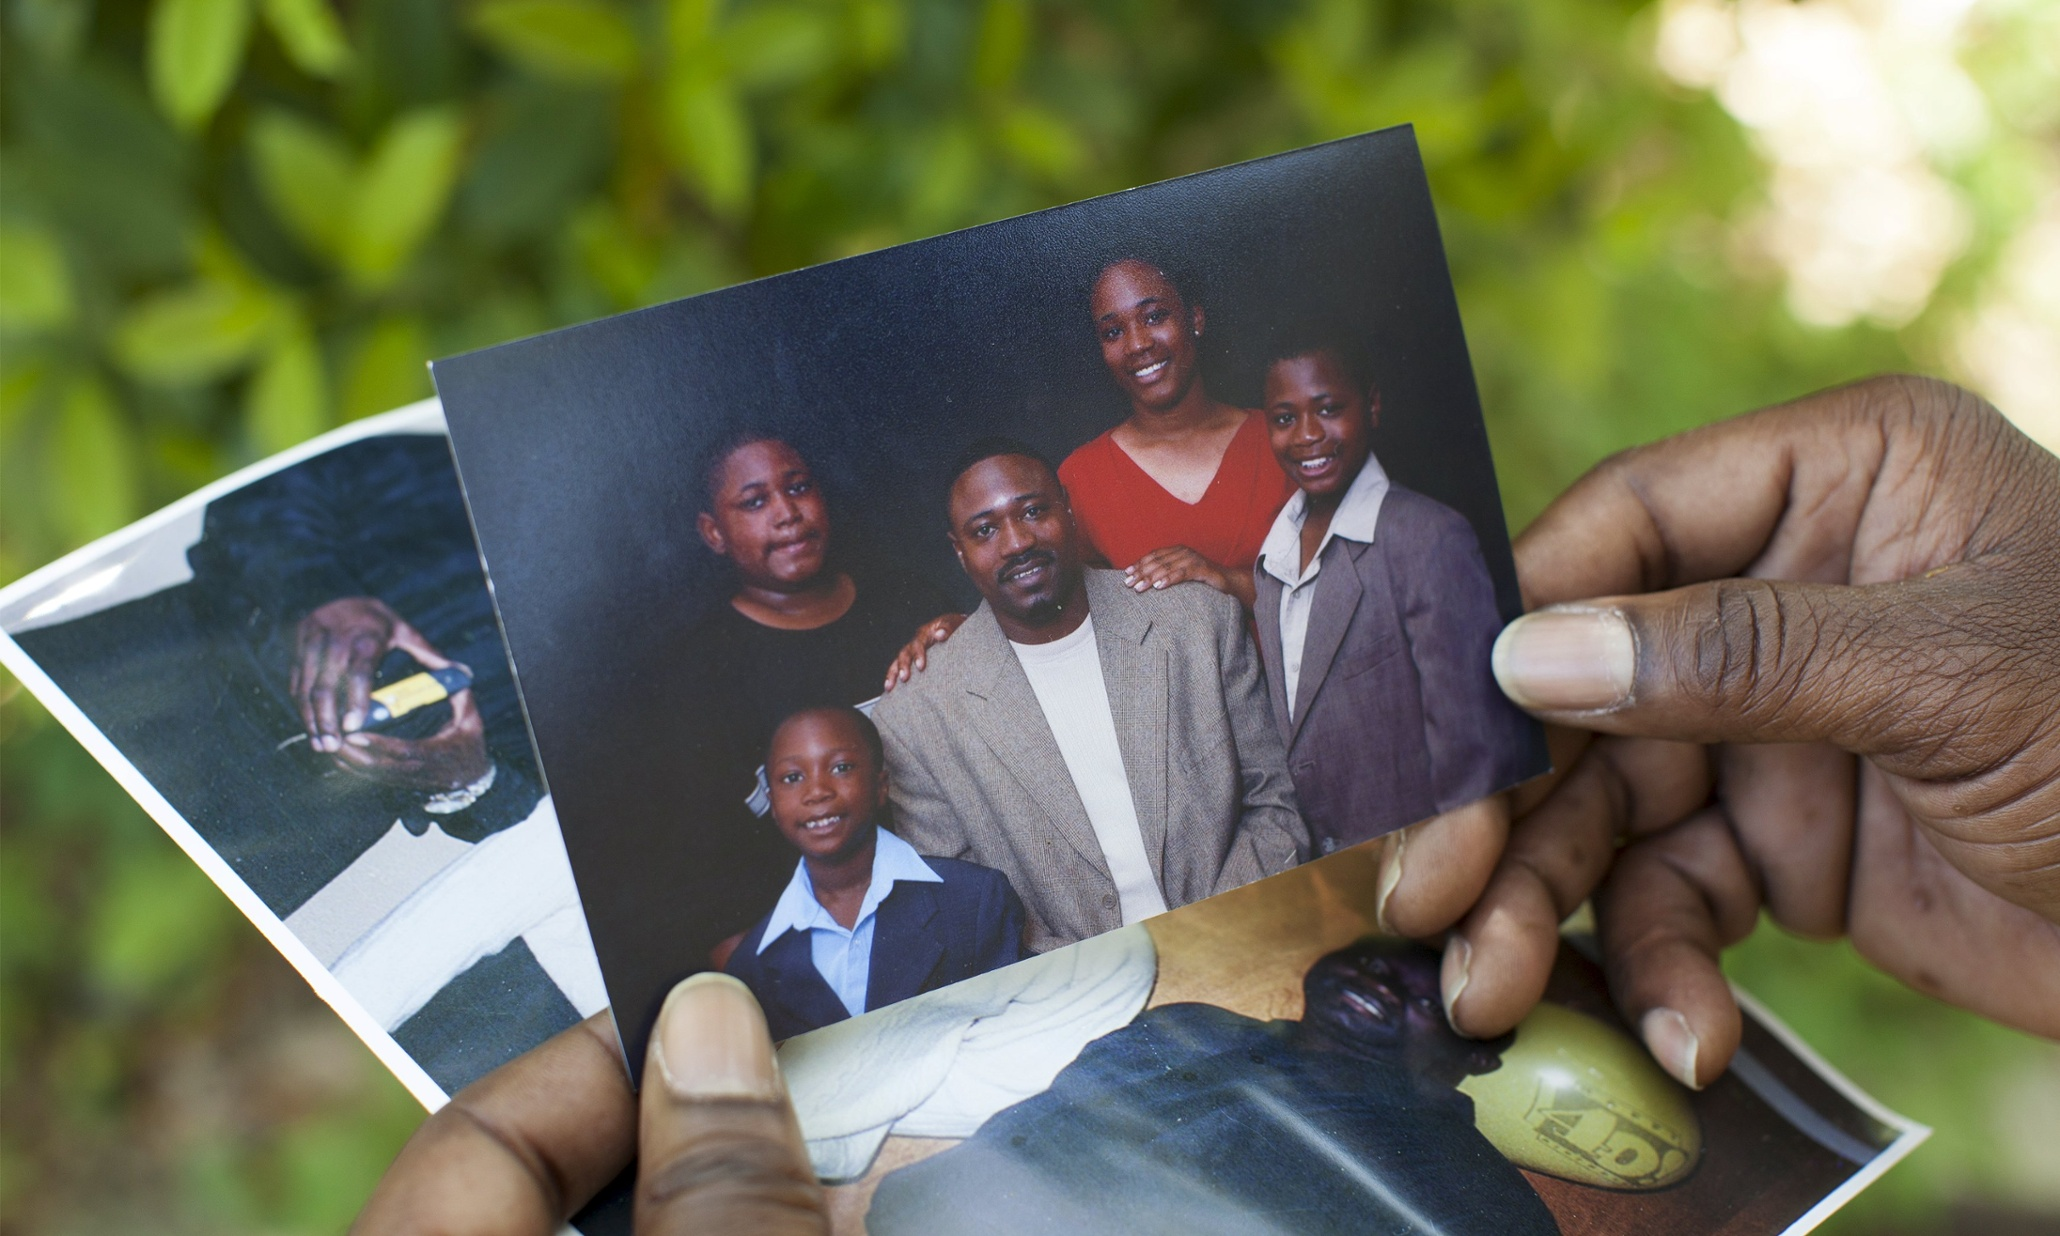 Walter Scott's family to file wrongful death and civil rights violation lawsuit